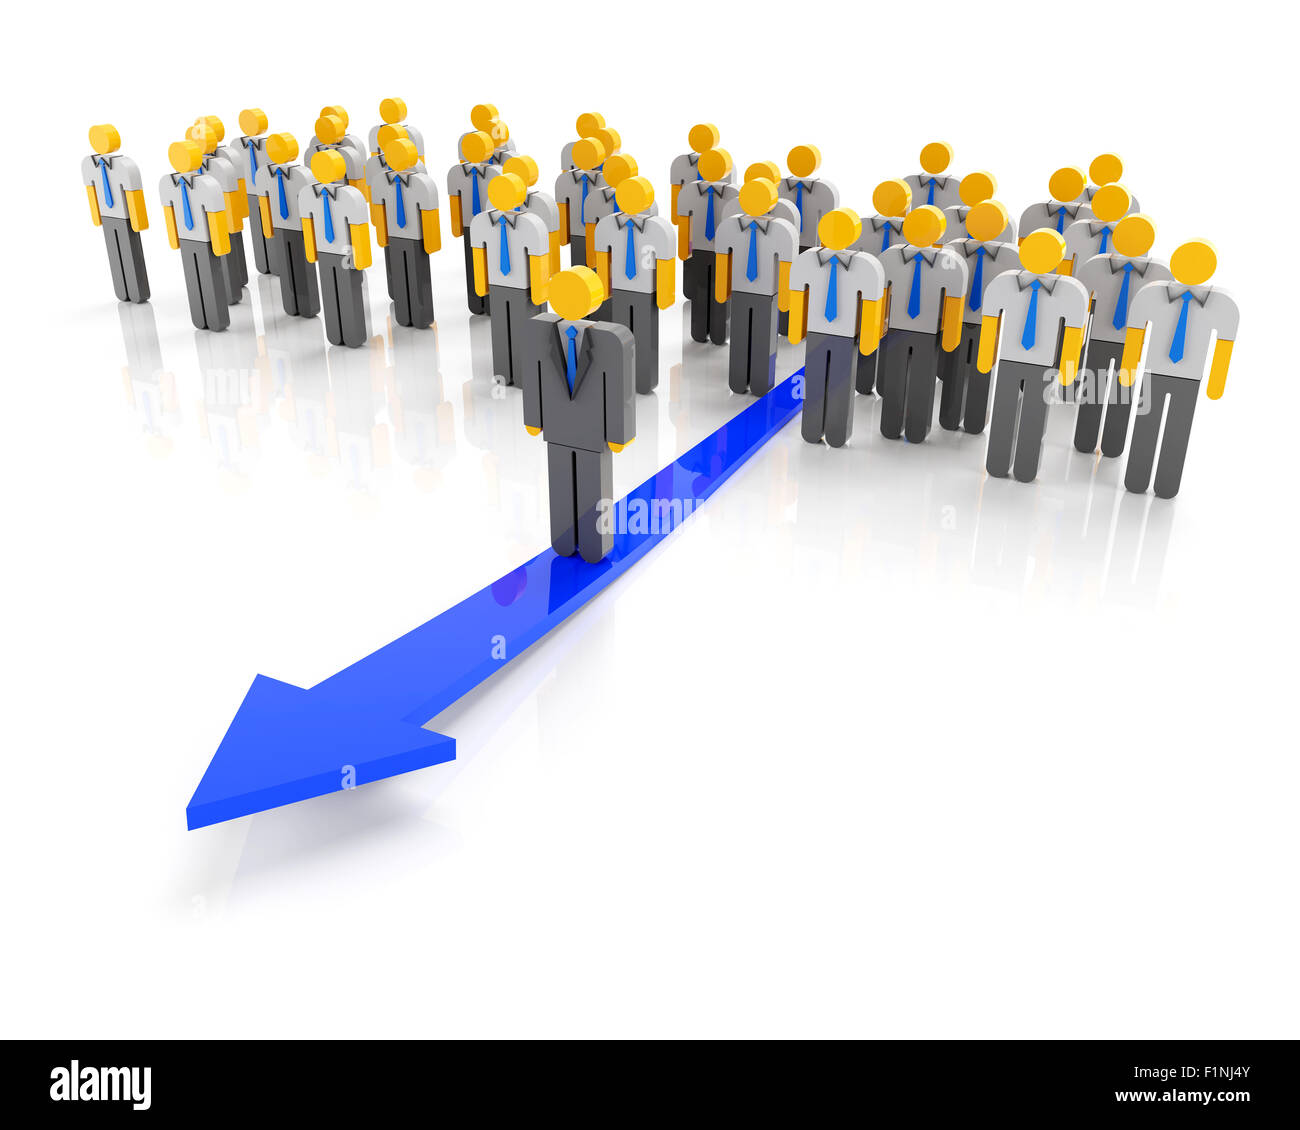 Business leadership and direction - Stock Image